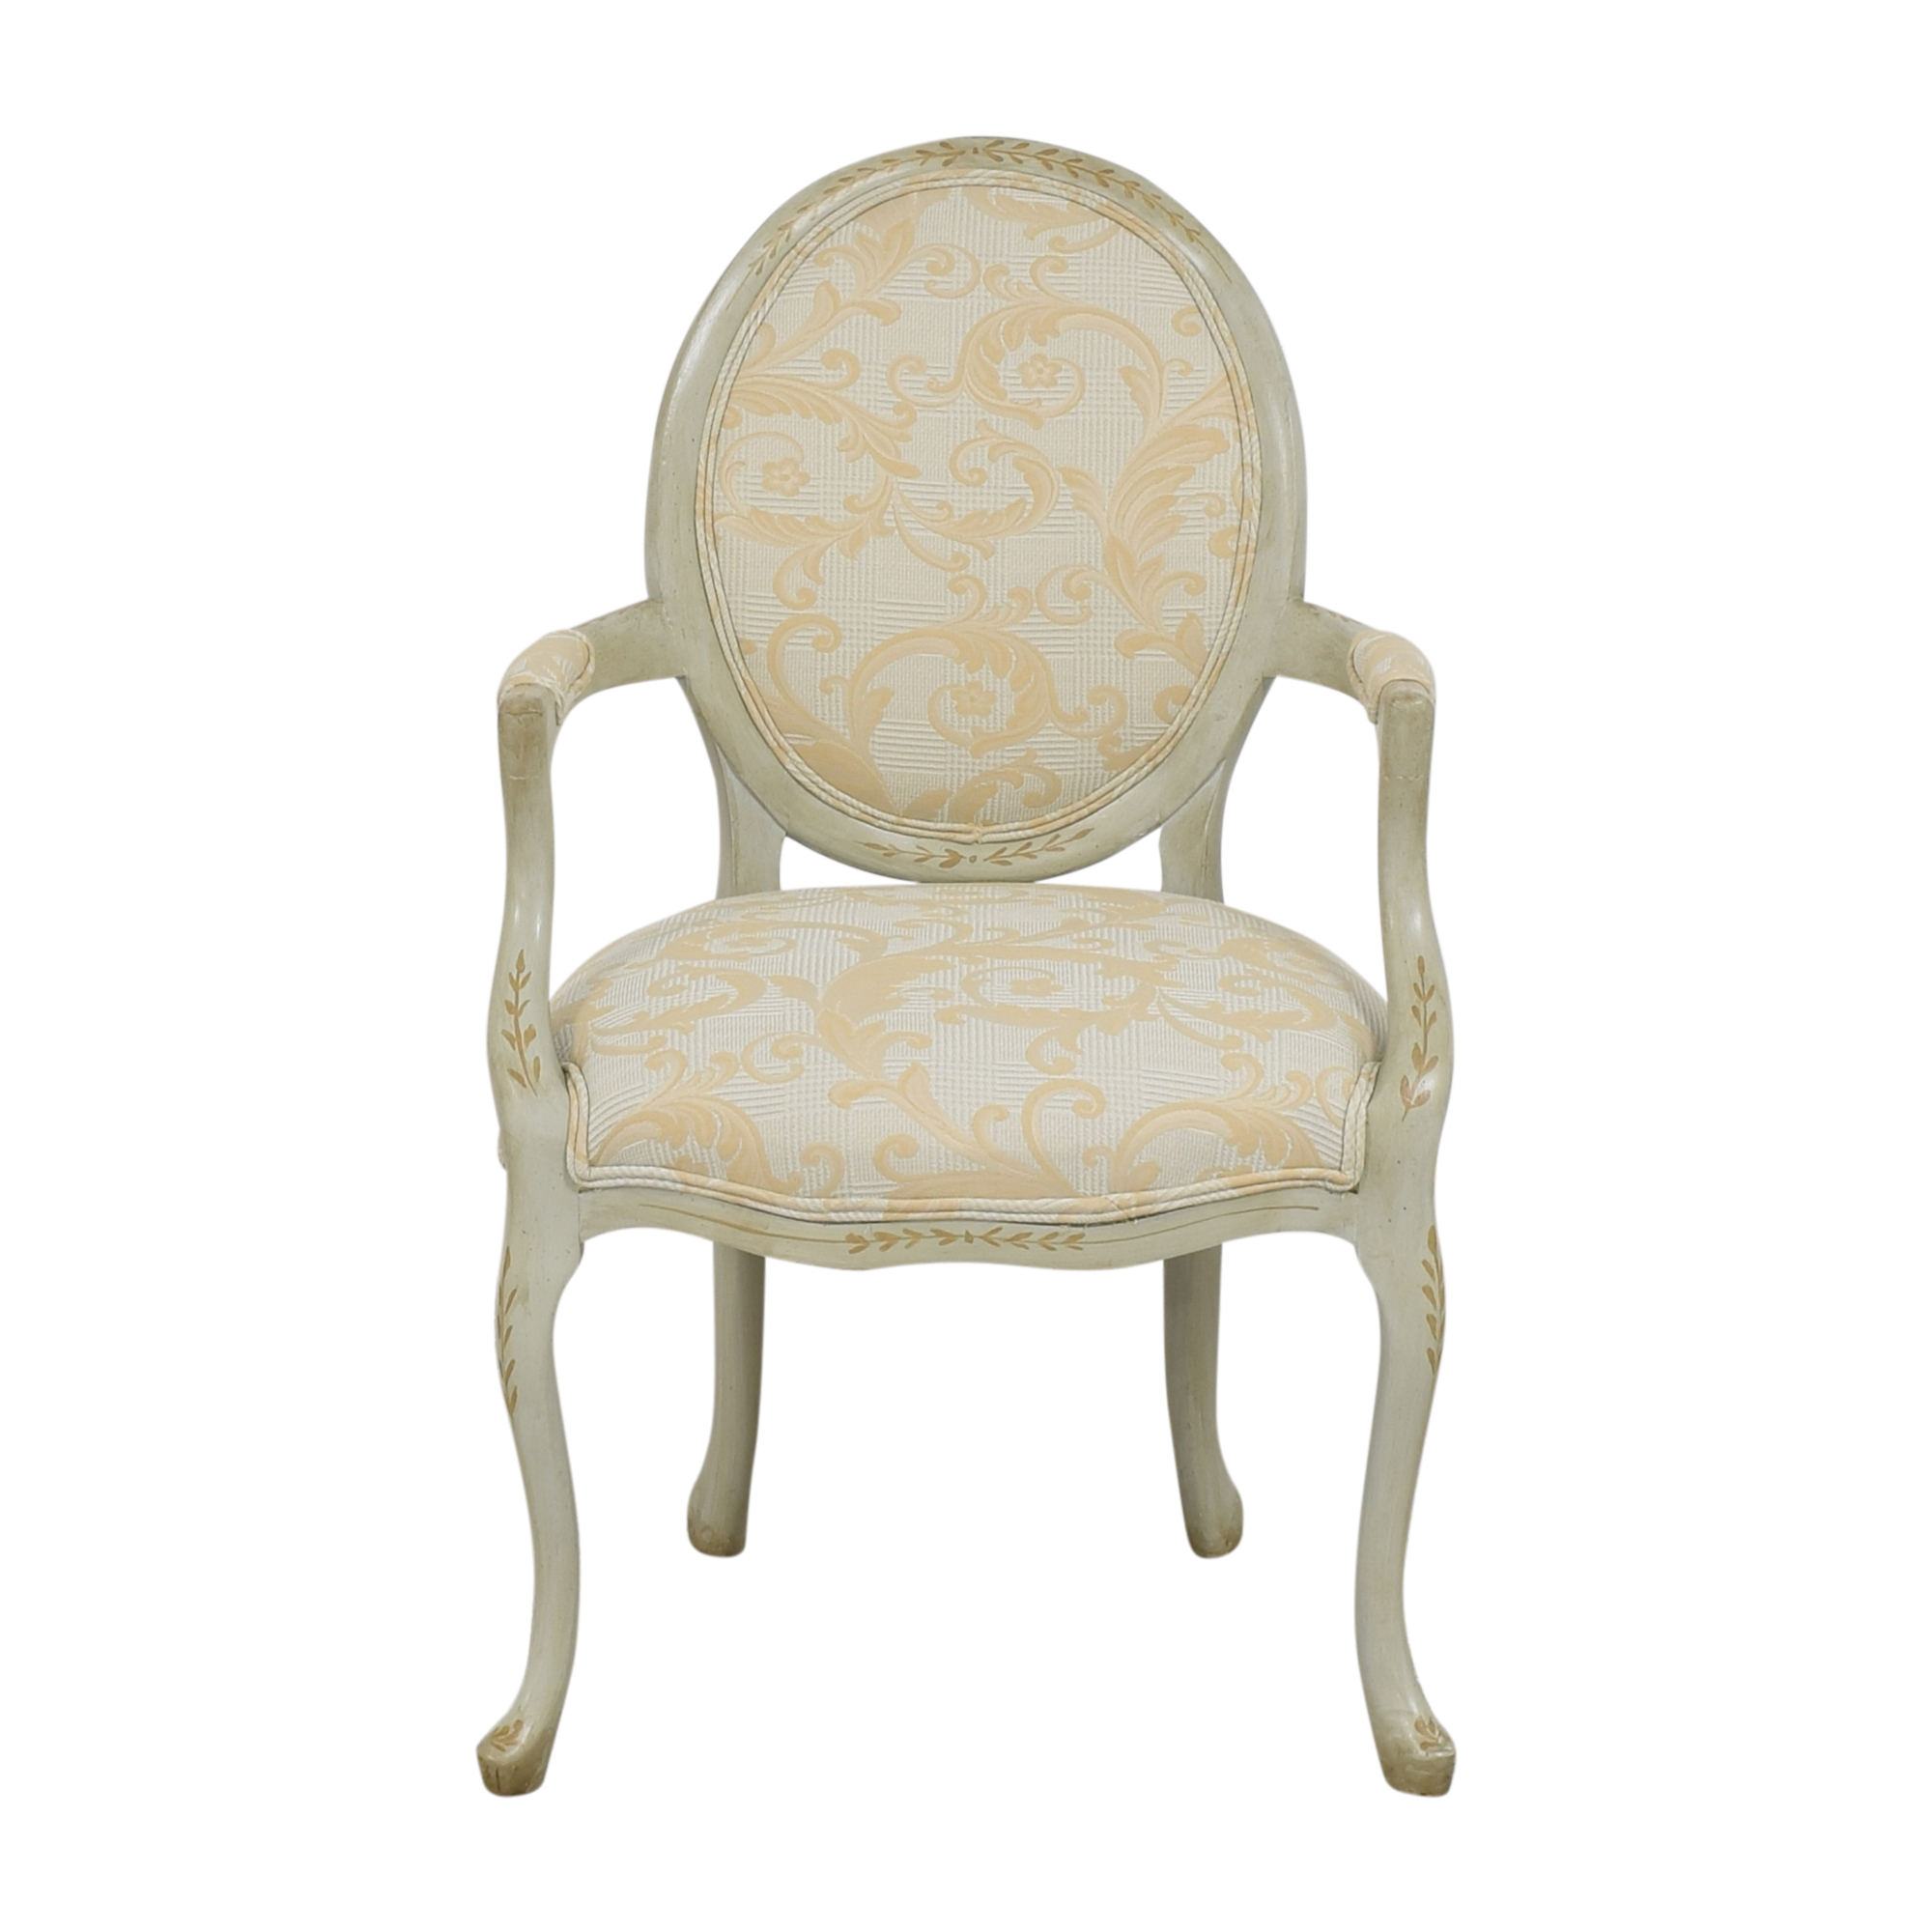 French-Style Round Back Arm Chair Accent Chairs